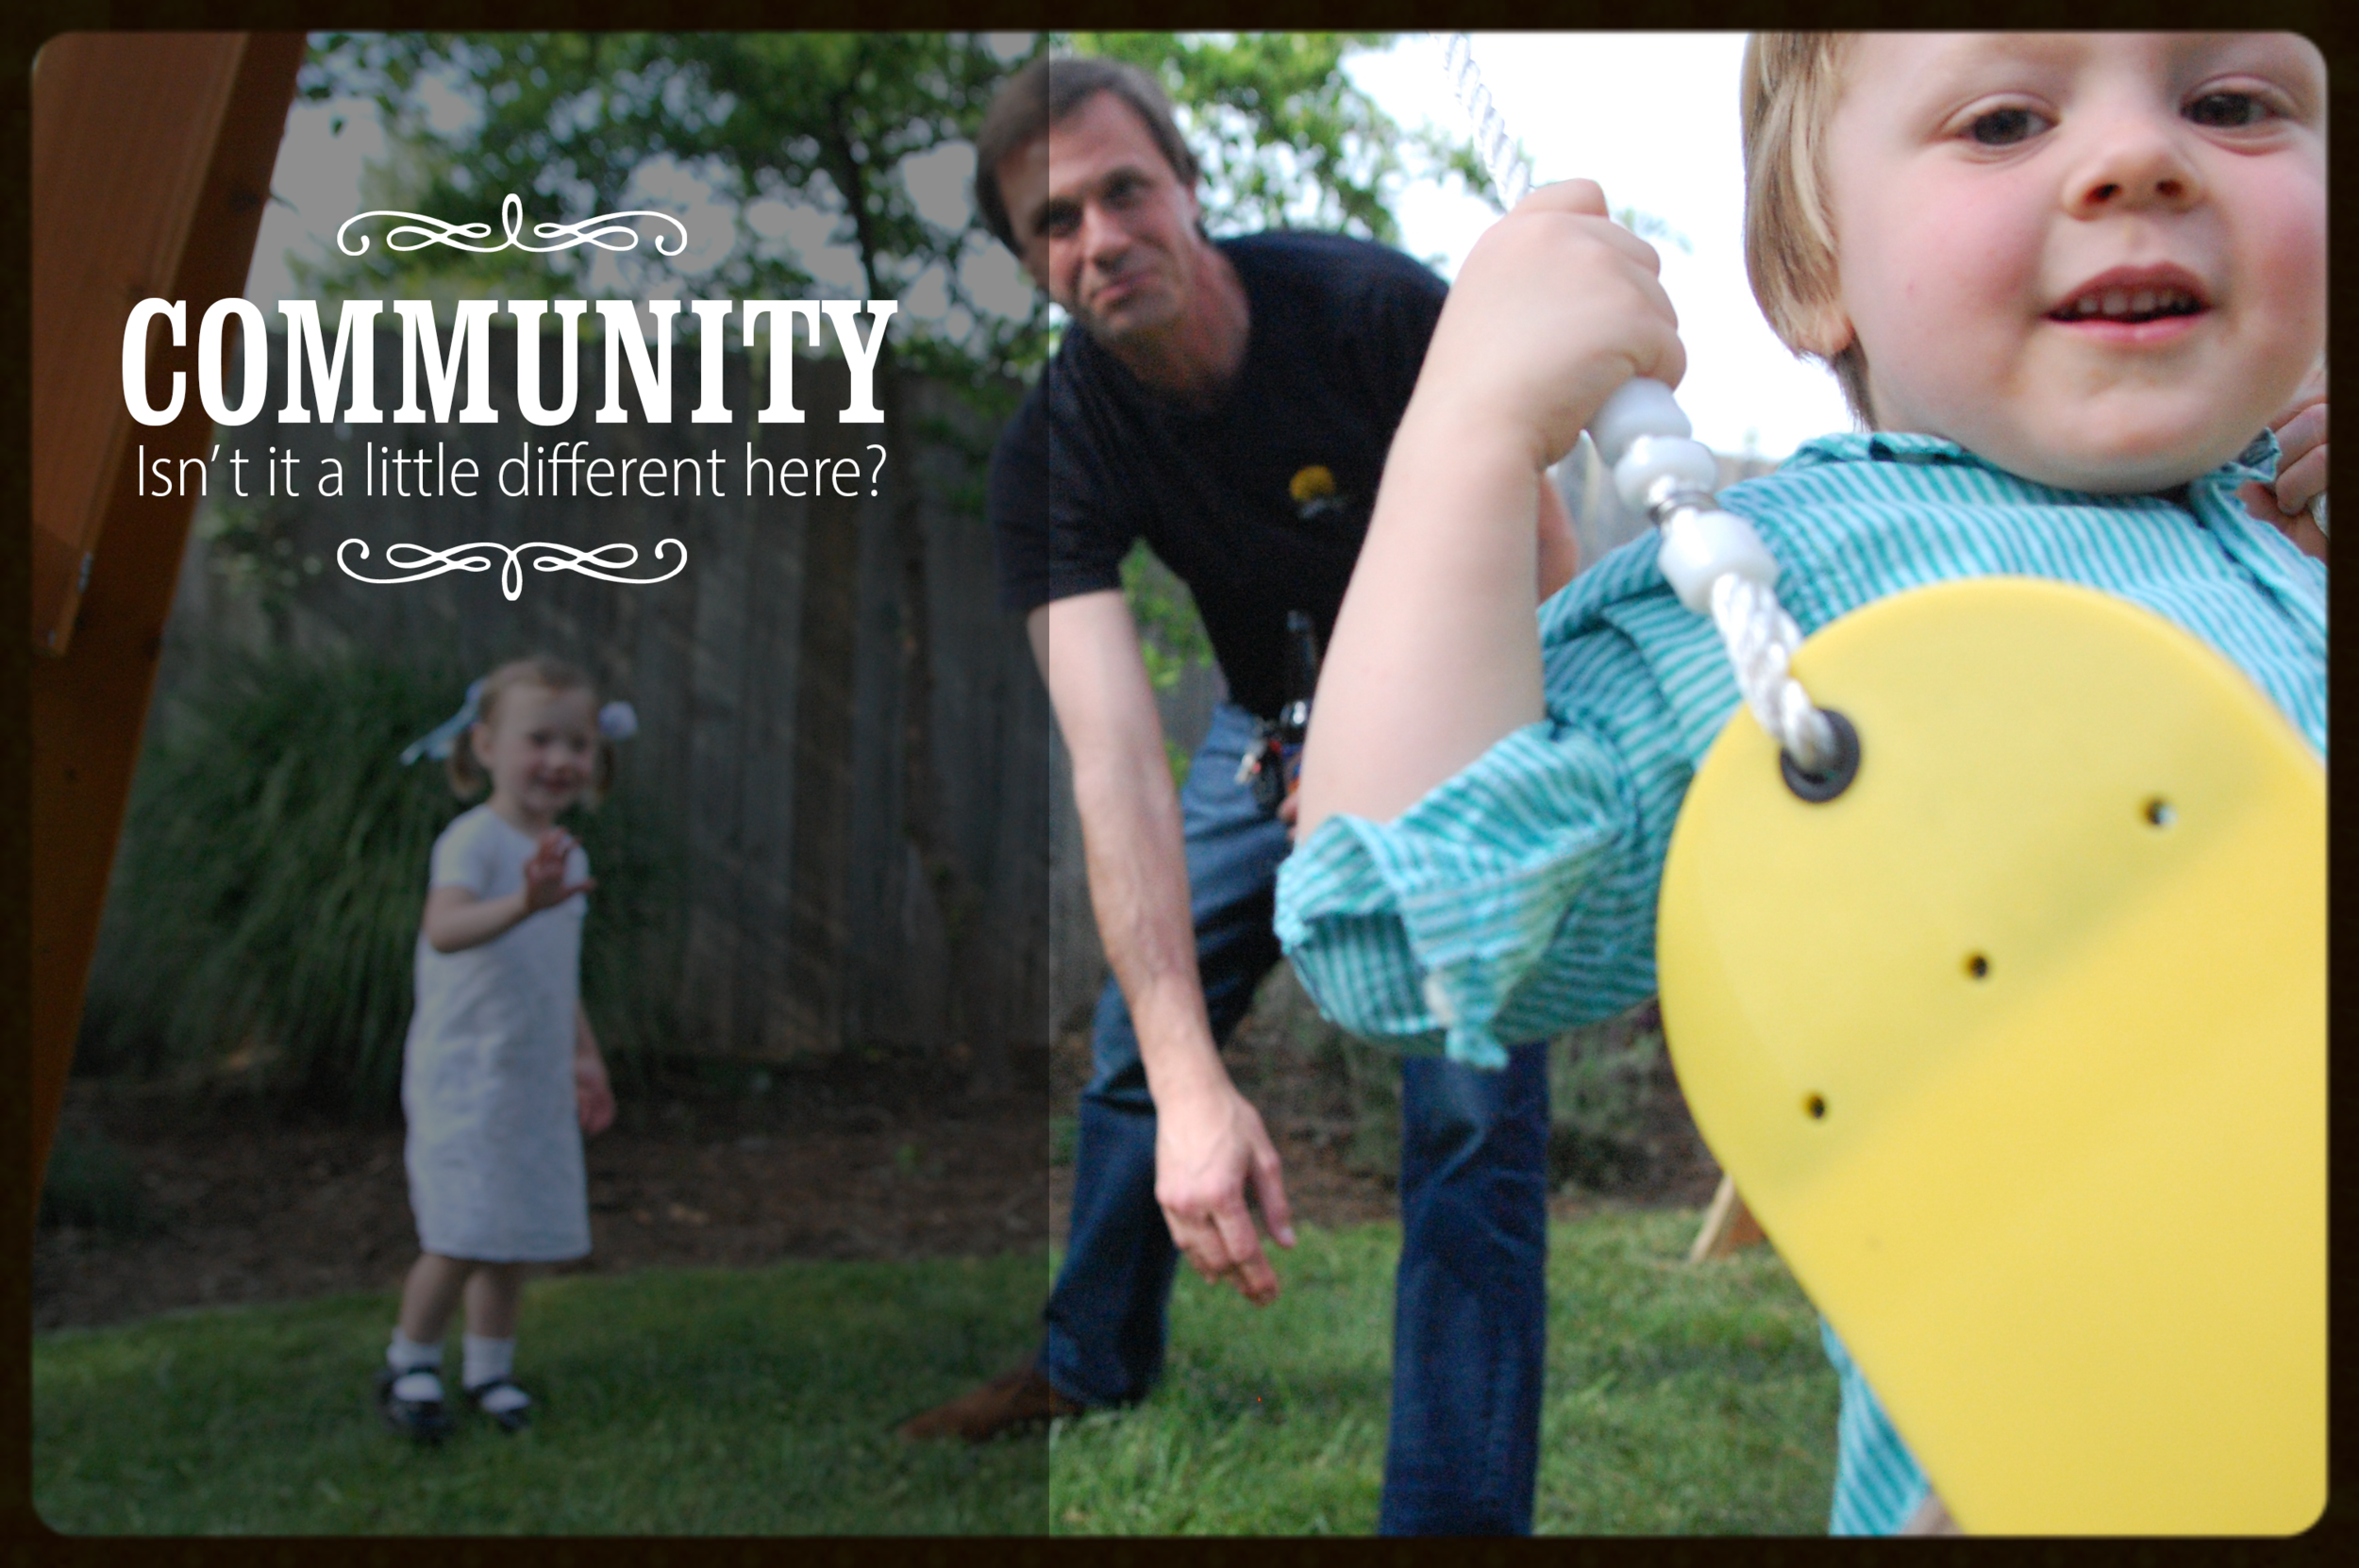 Photo :: Community. Isn't it a little different here in Charlottesville?